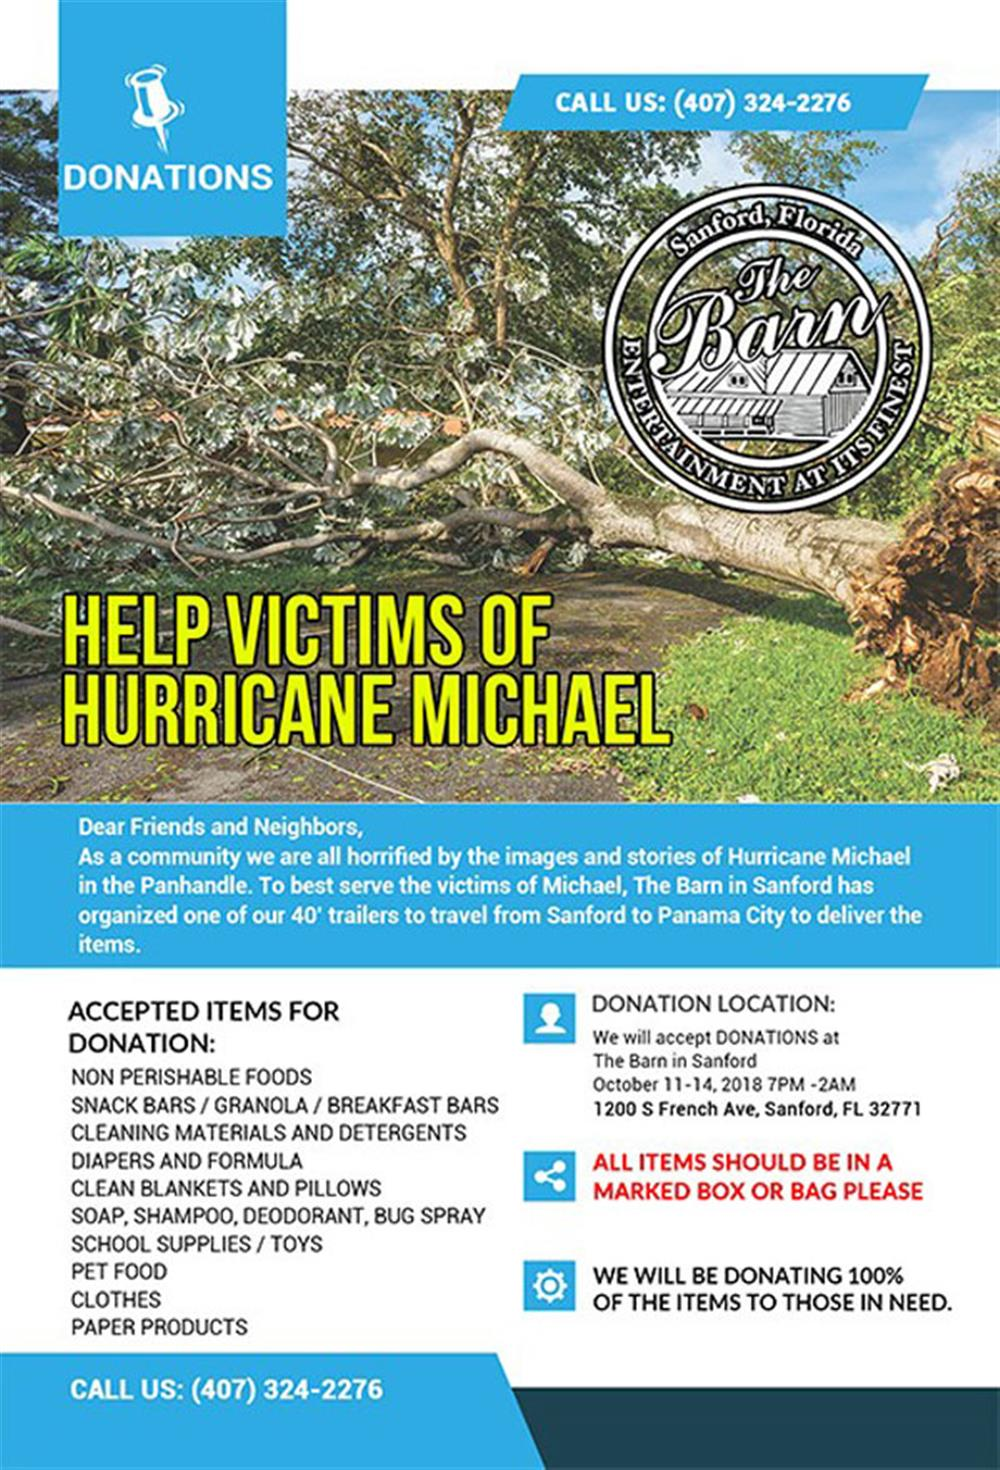 The Barn's Hurricane Michael Charity: Coming Together to Help the Victims of Hurricane Michael